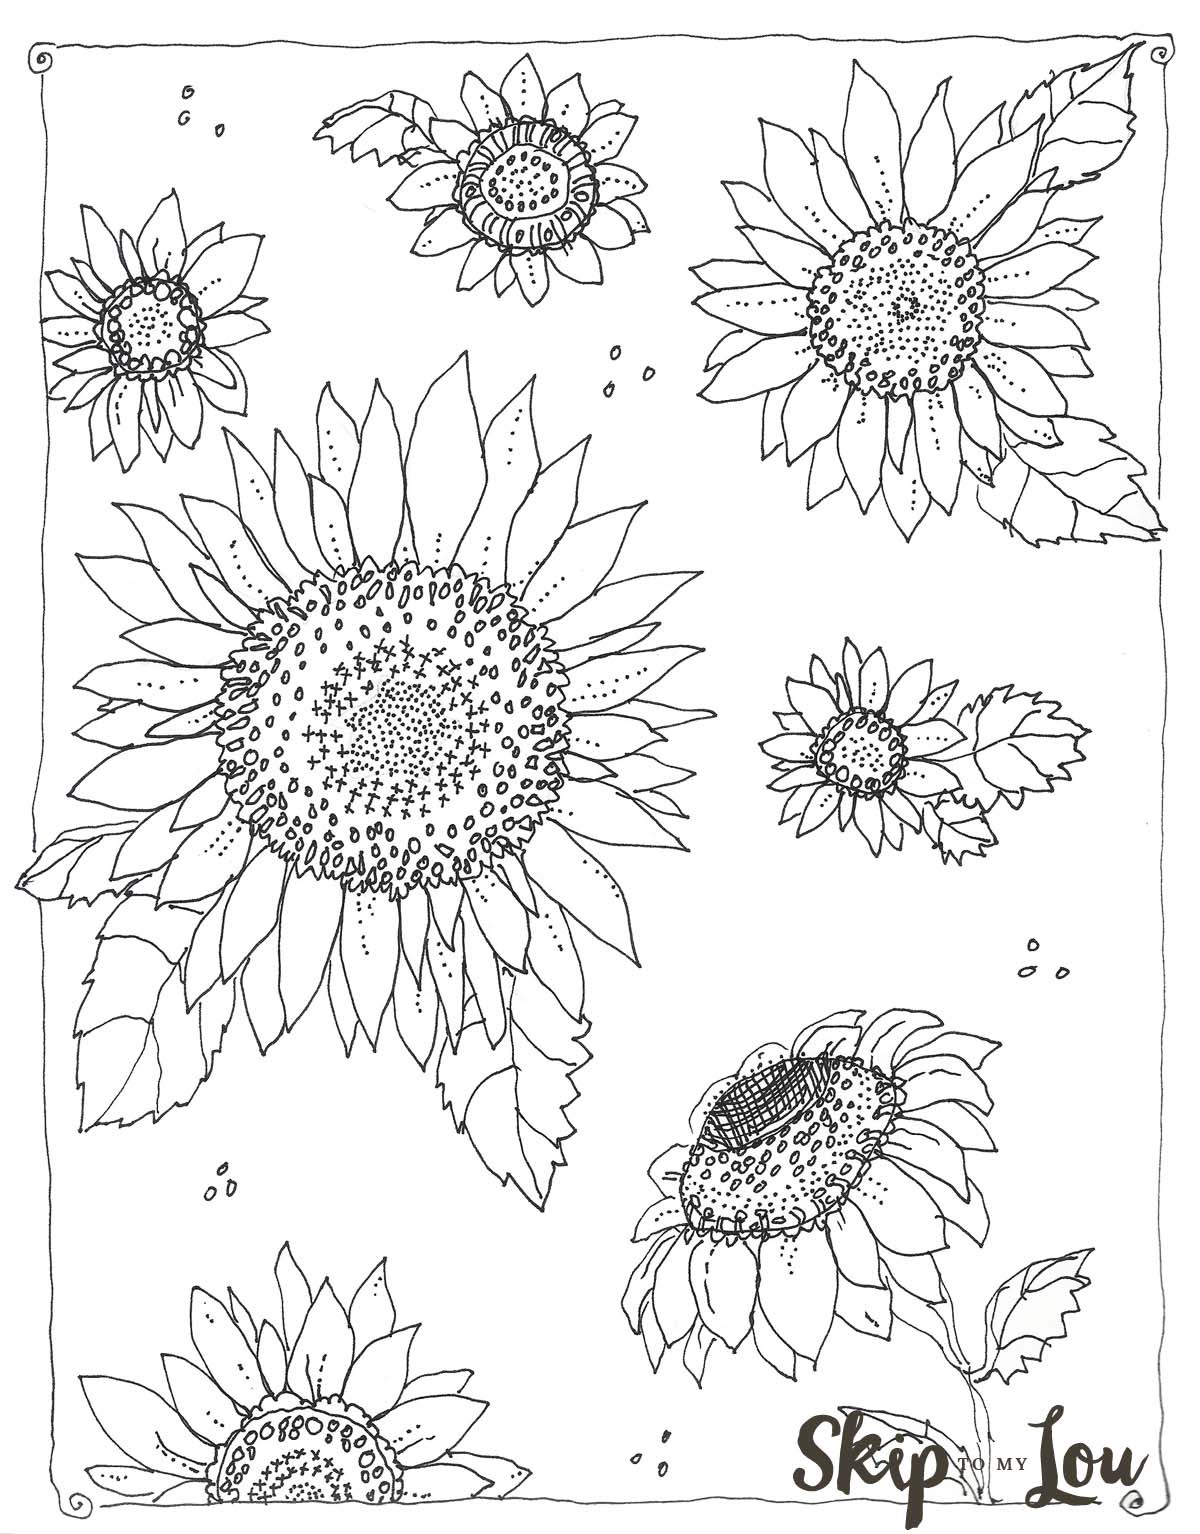 Sunflower Coloring Pages For Adults  Kansas Day Sunflower Coloring Page